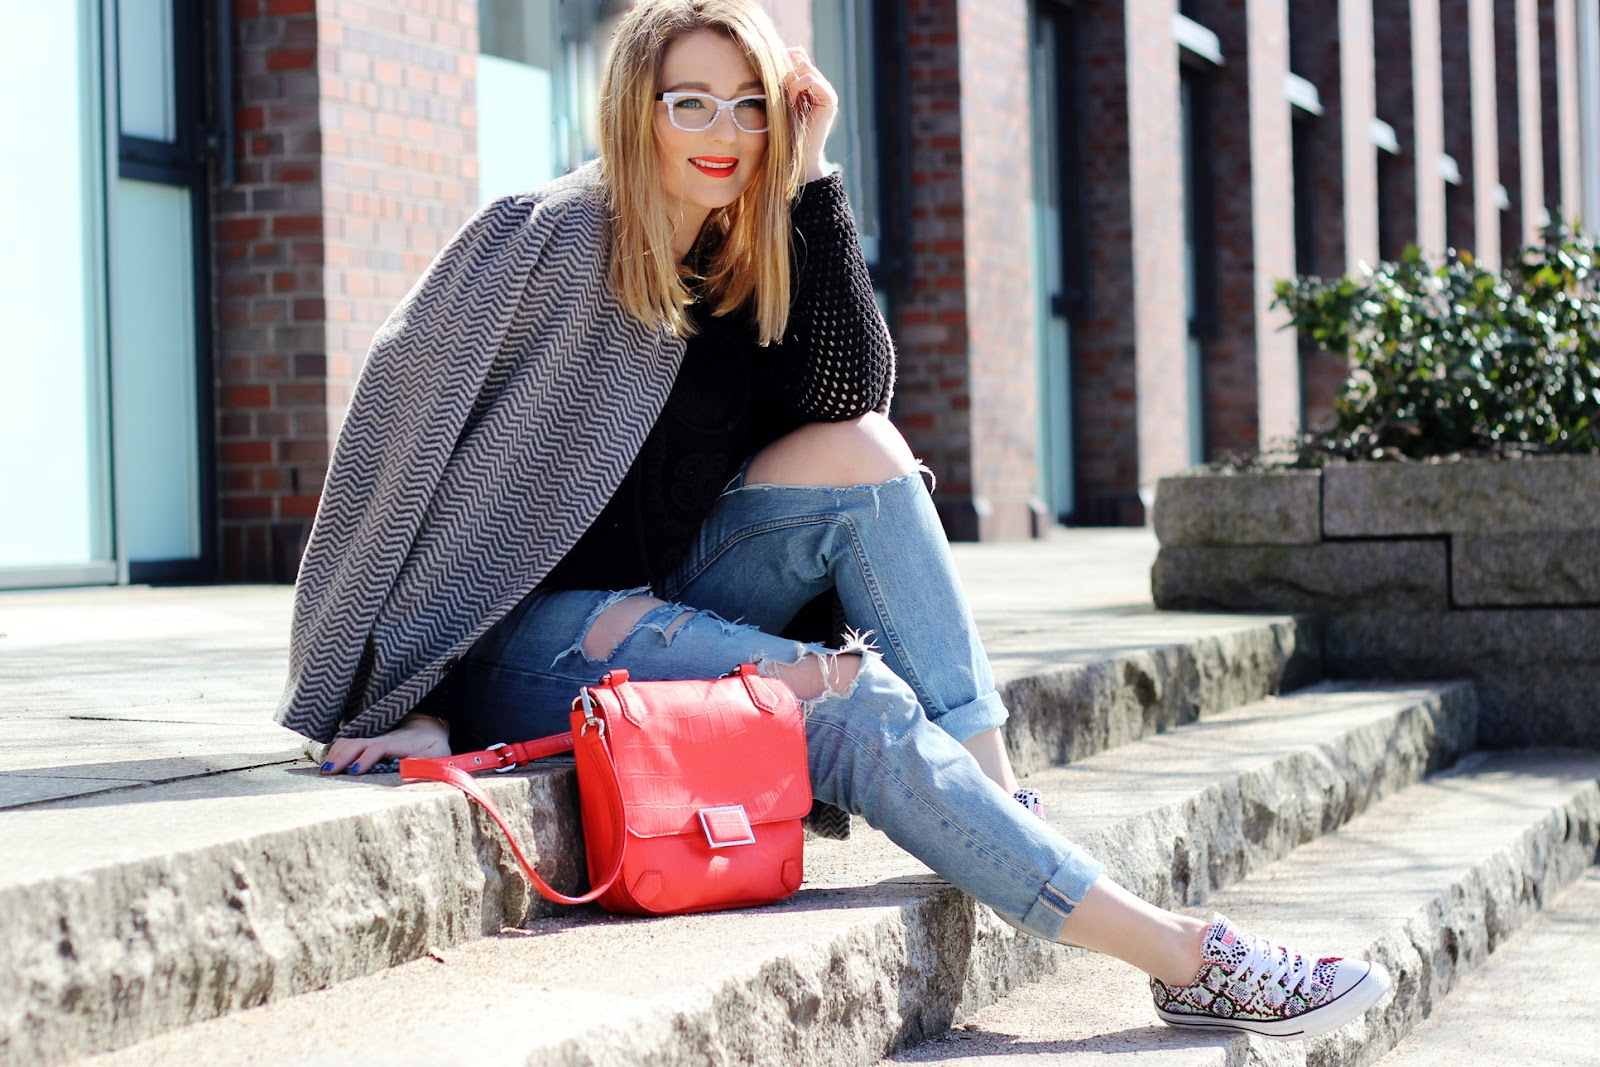 Converse, snake, all stars, OX, Foot Locker, Hamburg, Modeblogger, Fischgräten Mantel, Firmoo glasses, white frame, fashionbogger, ripped jeans, total destroyed, löcher am knie, marc by marc jacobs, tasche, rot,